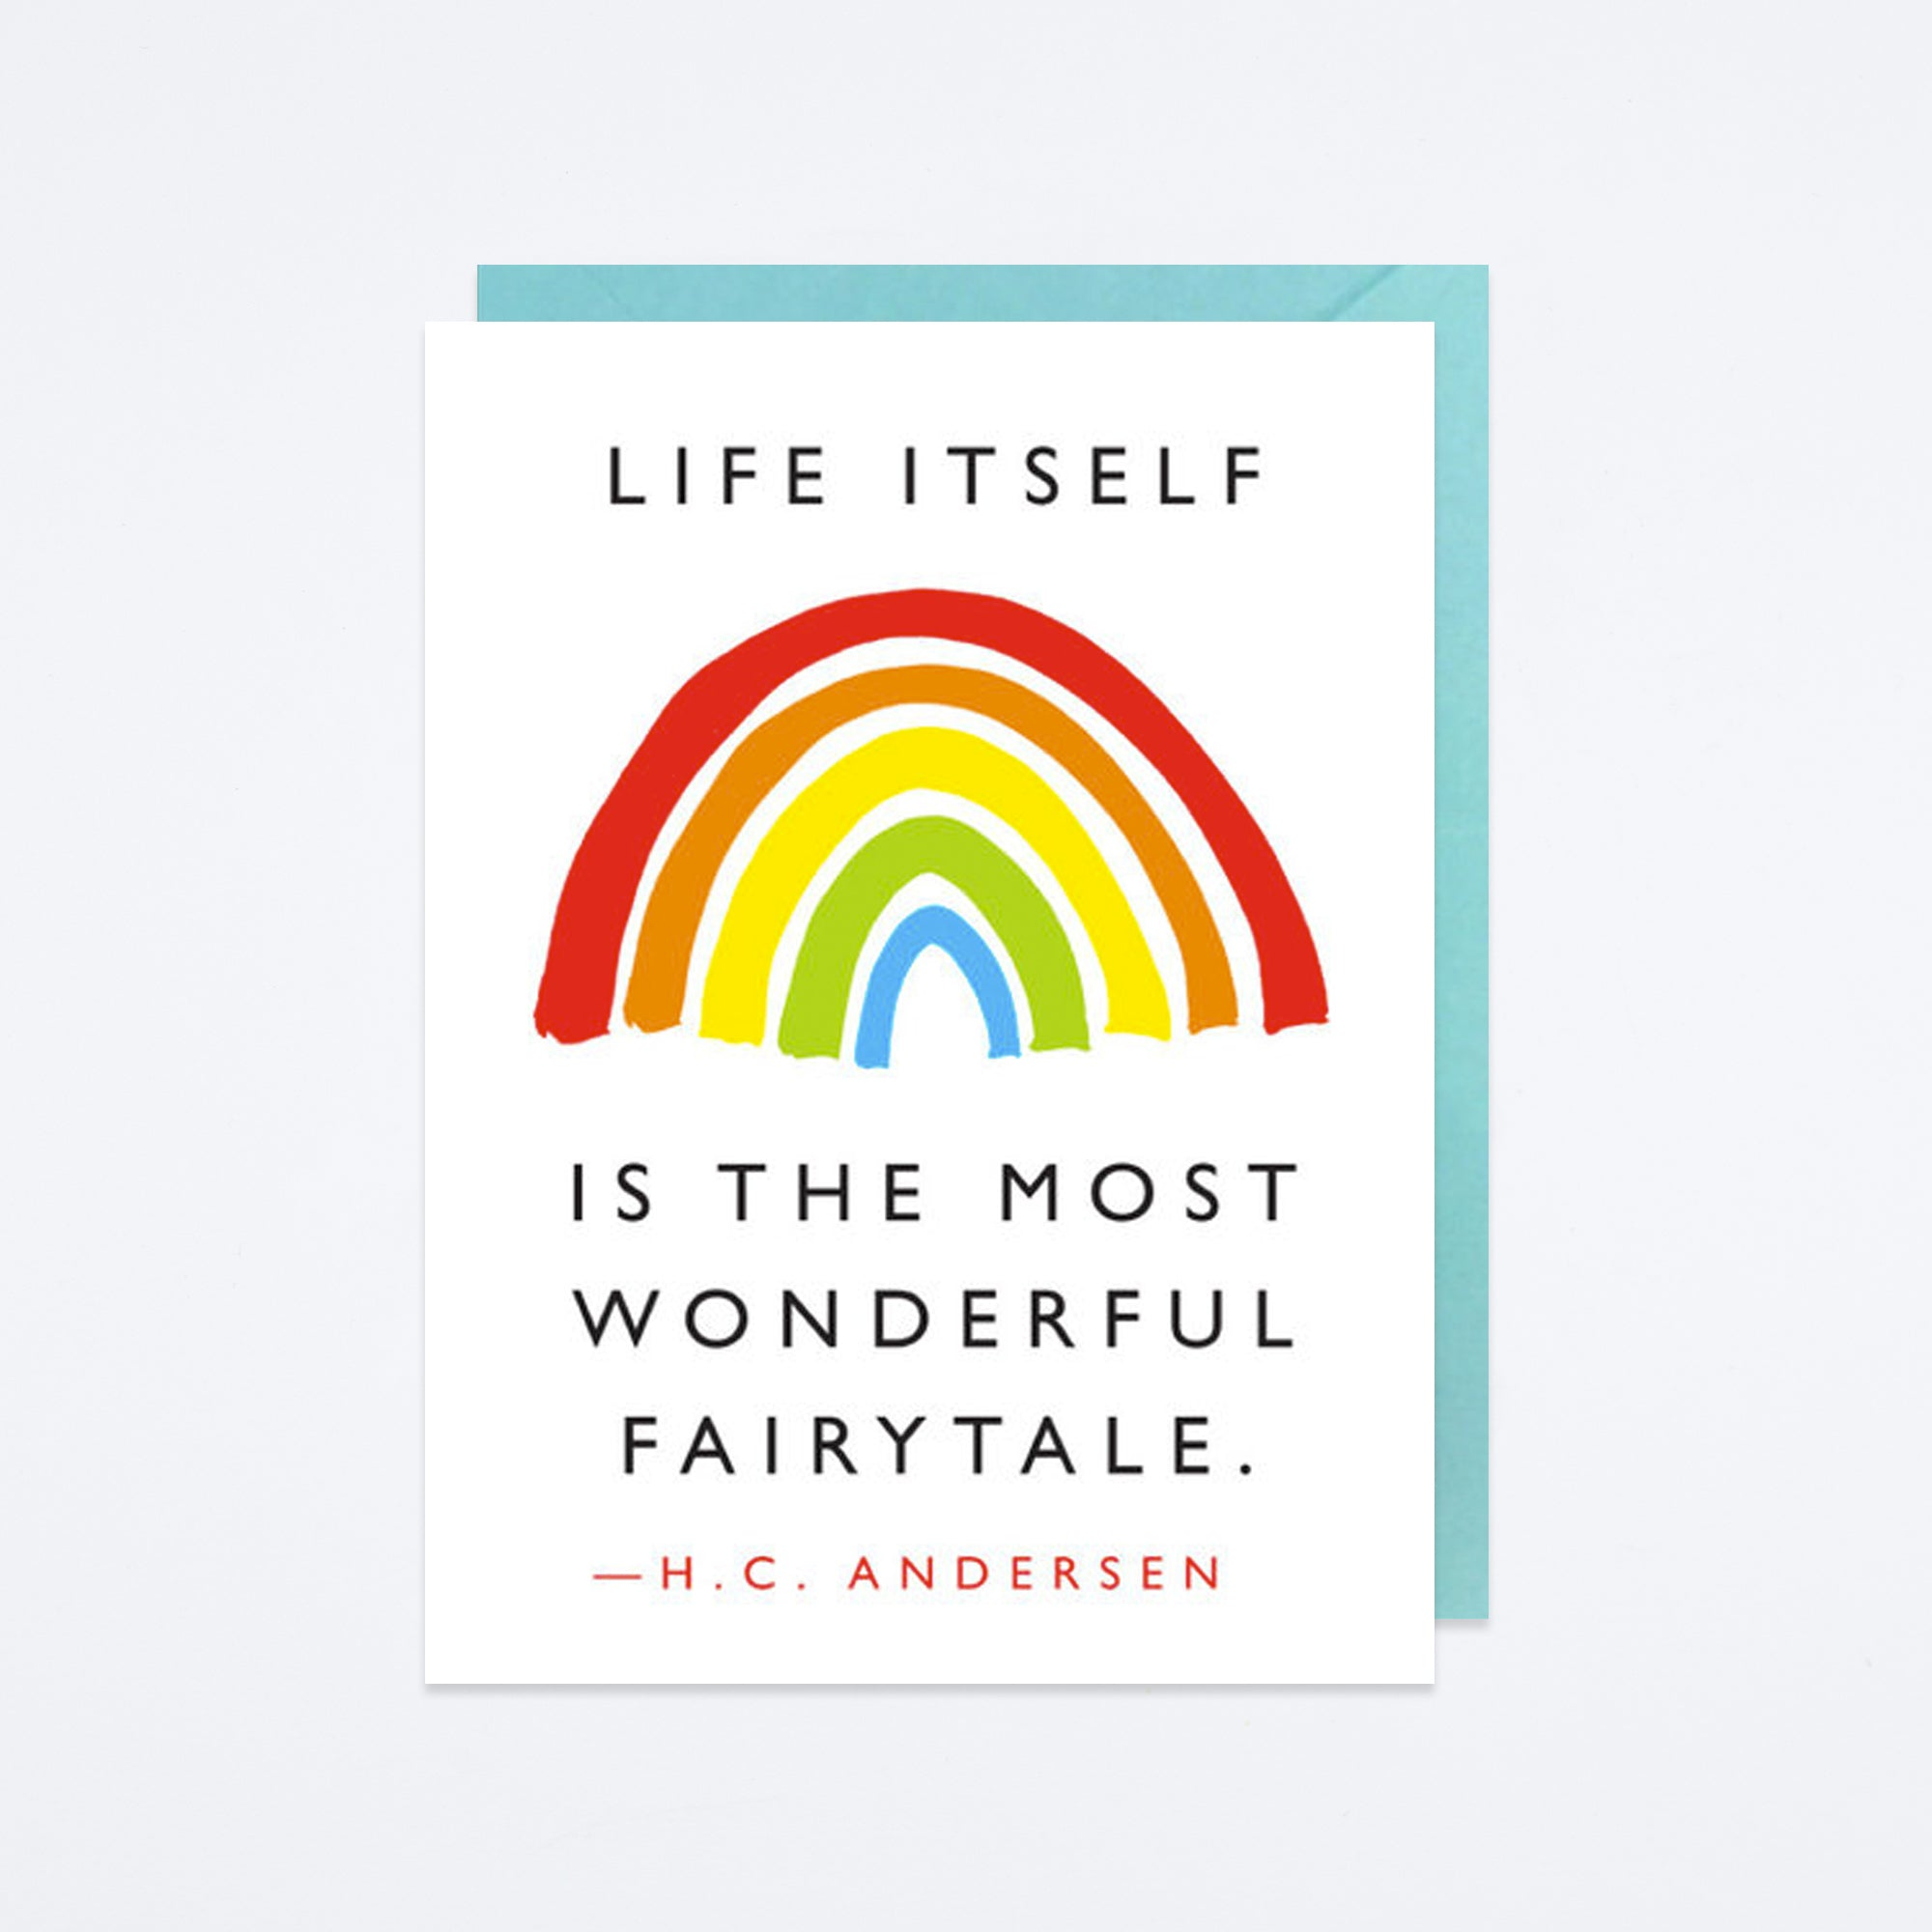 Wonderful Fairytale Card